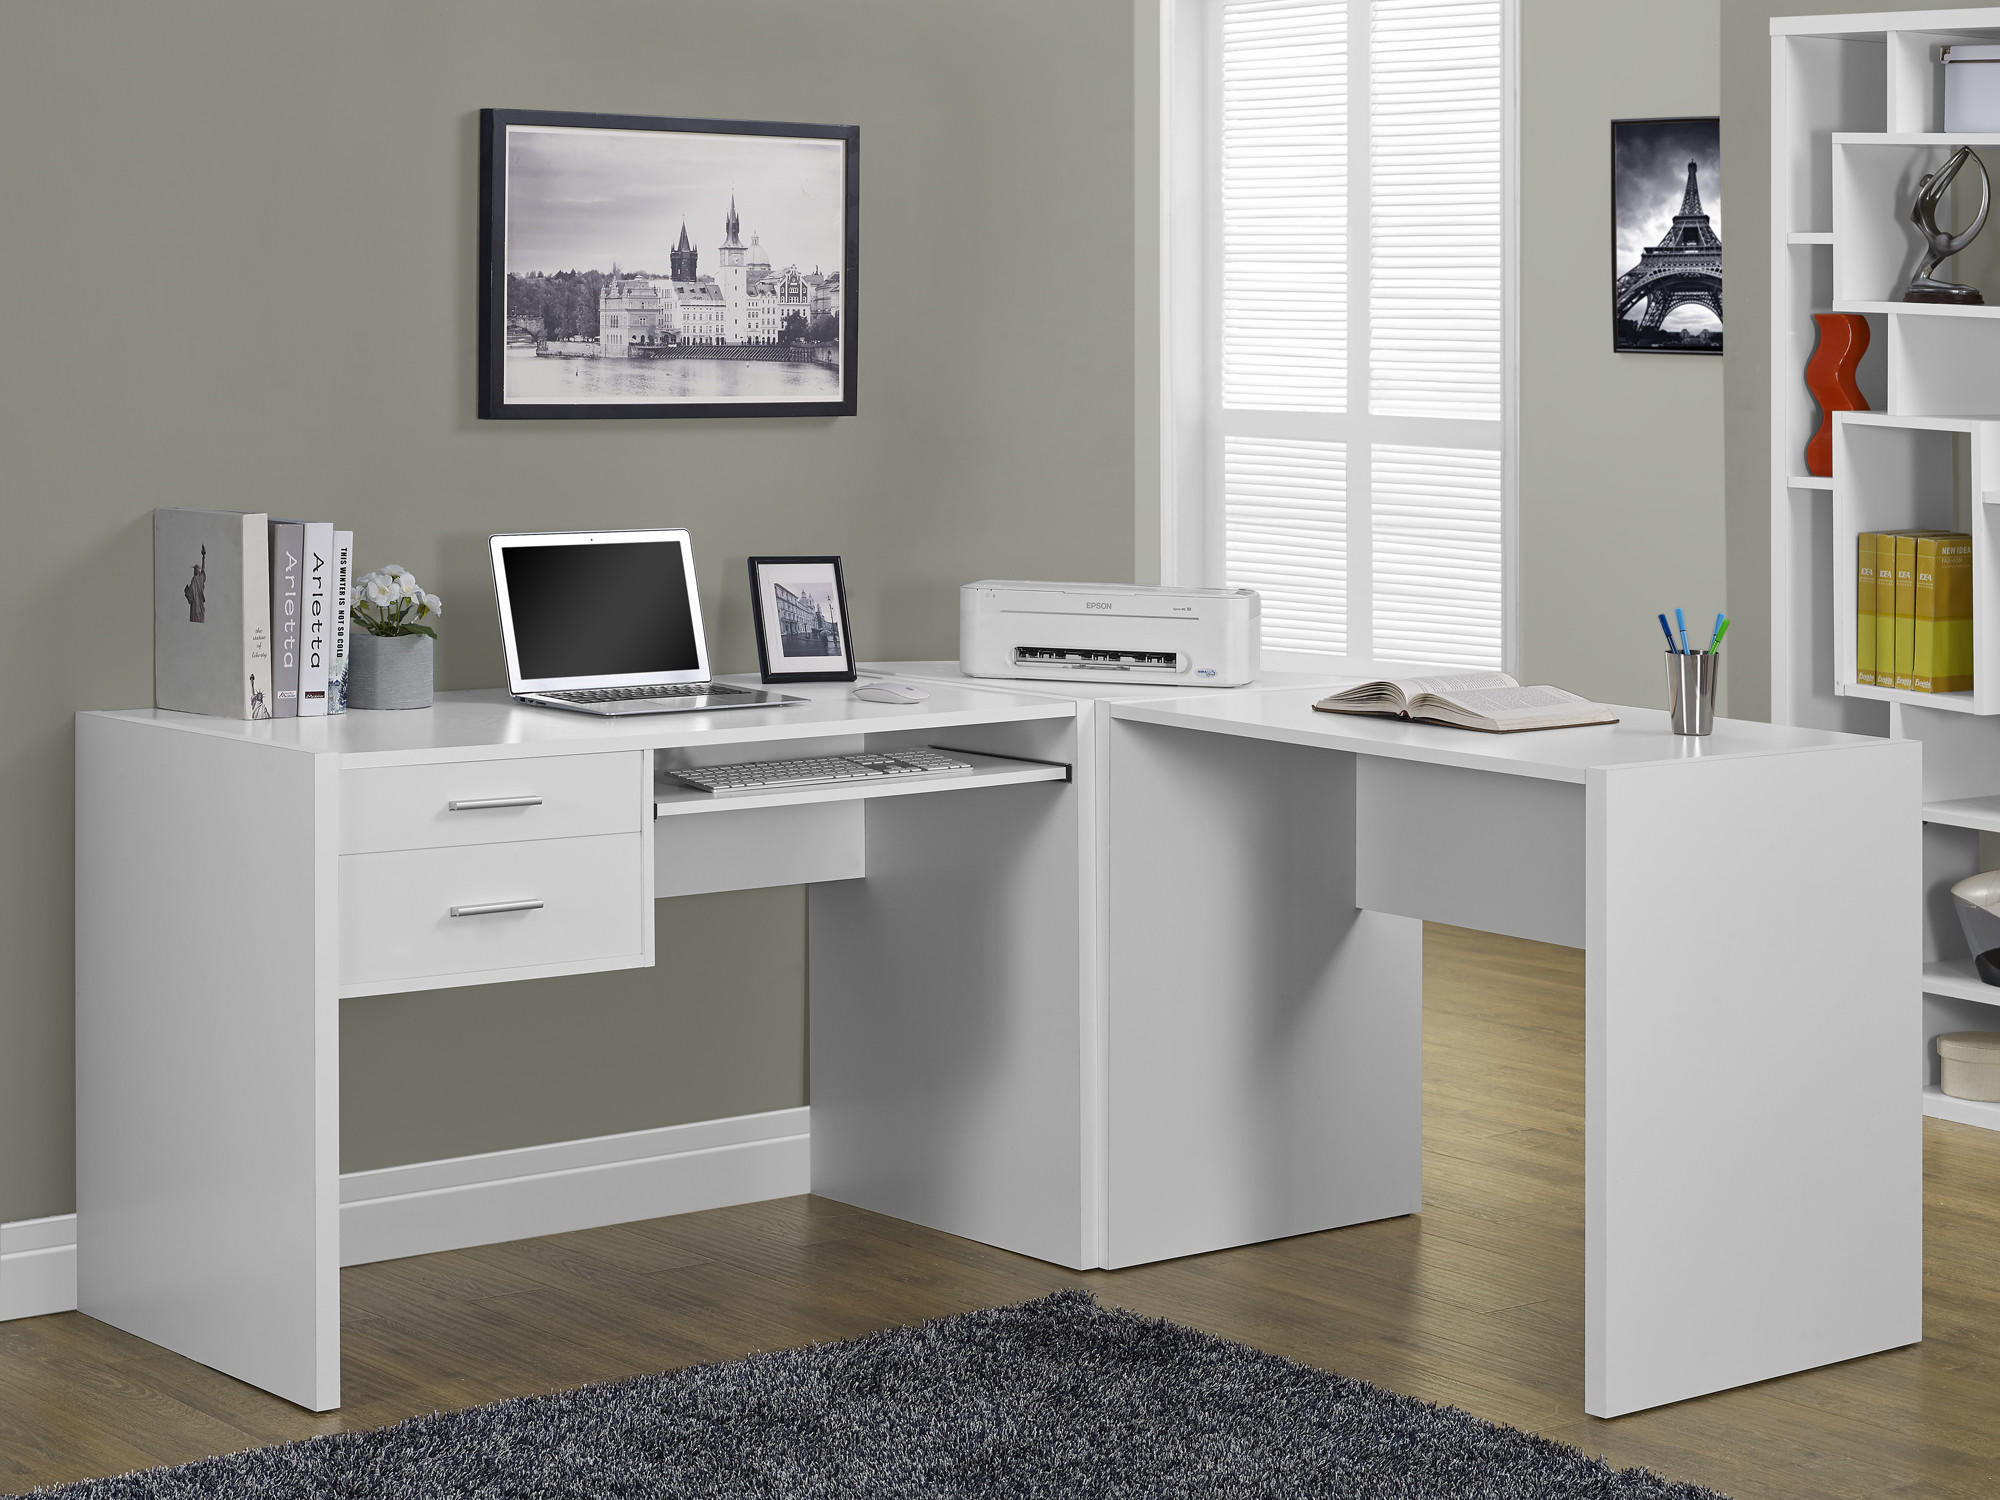 white hollow core computer desk from michael anthony furniture. Black Bedroom Furniture Sets. Home Design Ideas